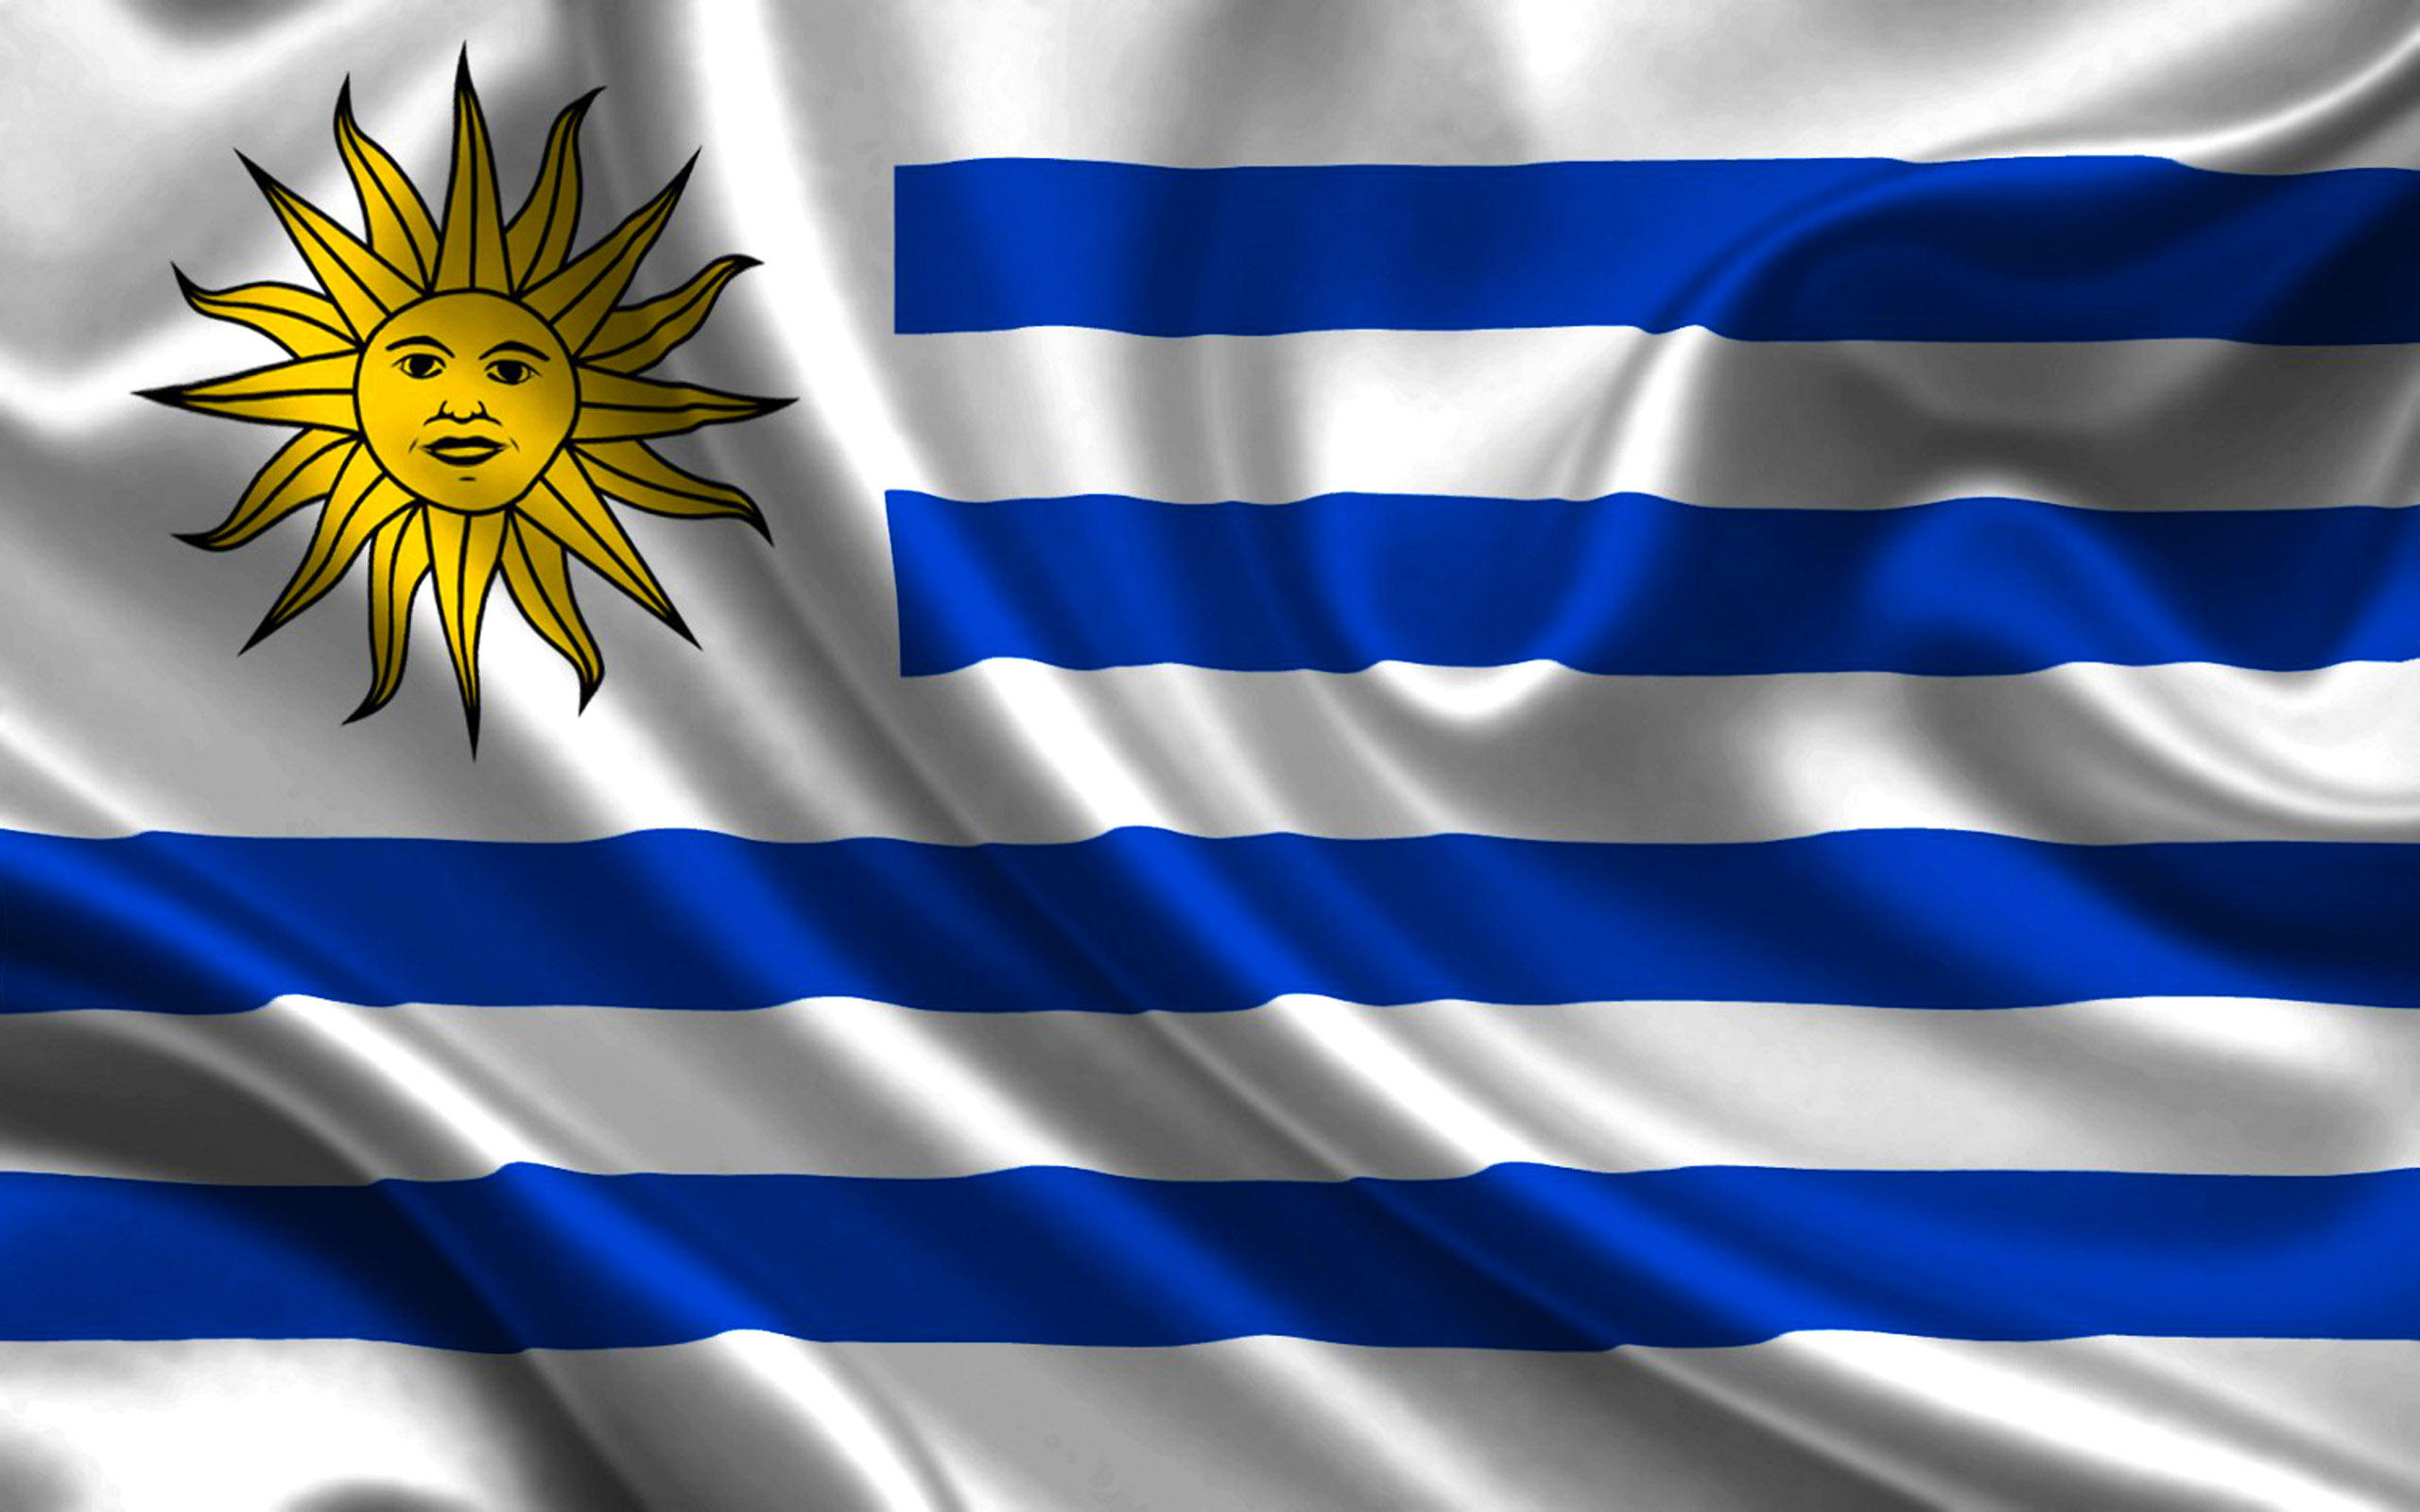 Flag Of Uruguay Backgrounds, Compatible - PC, Mobile, Gadgets  2560x1600 px